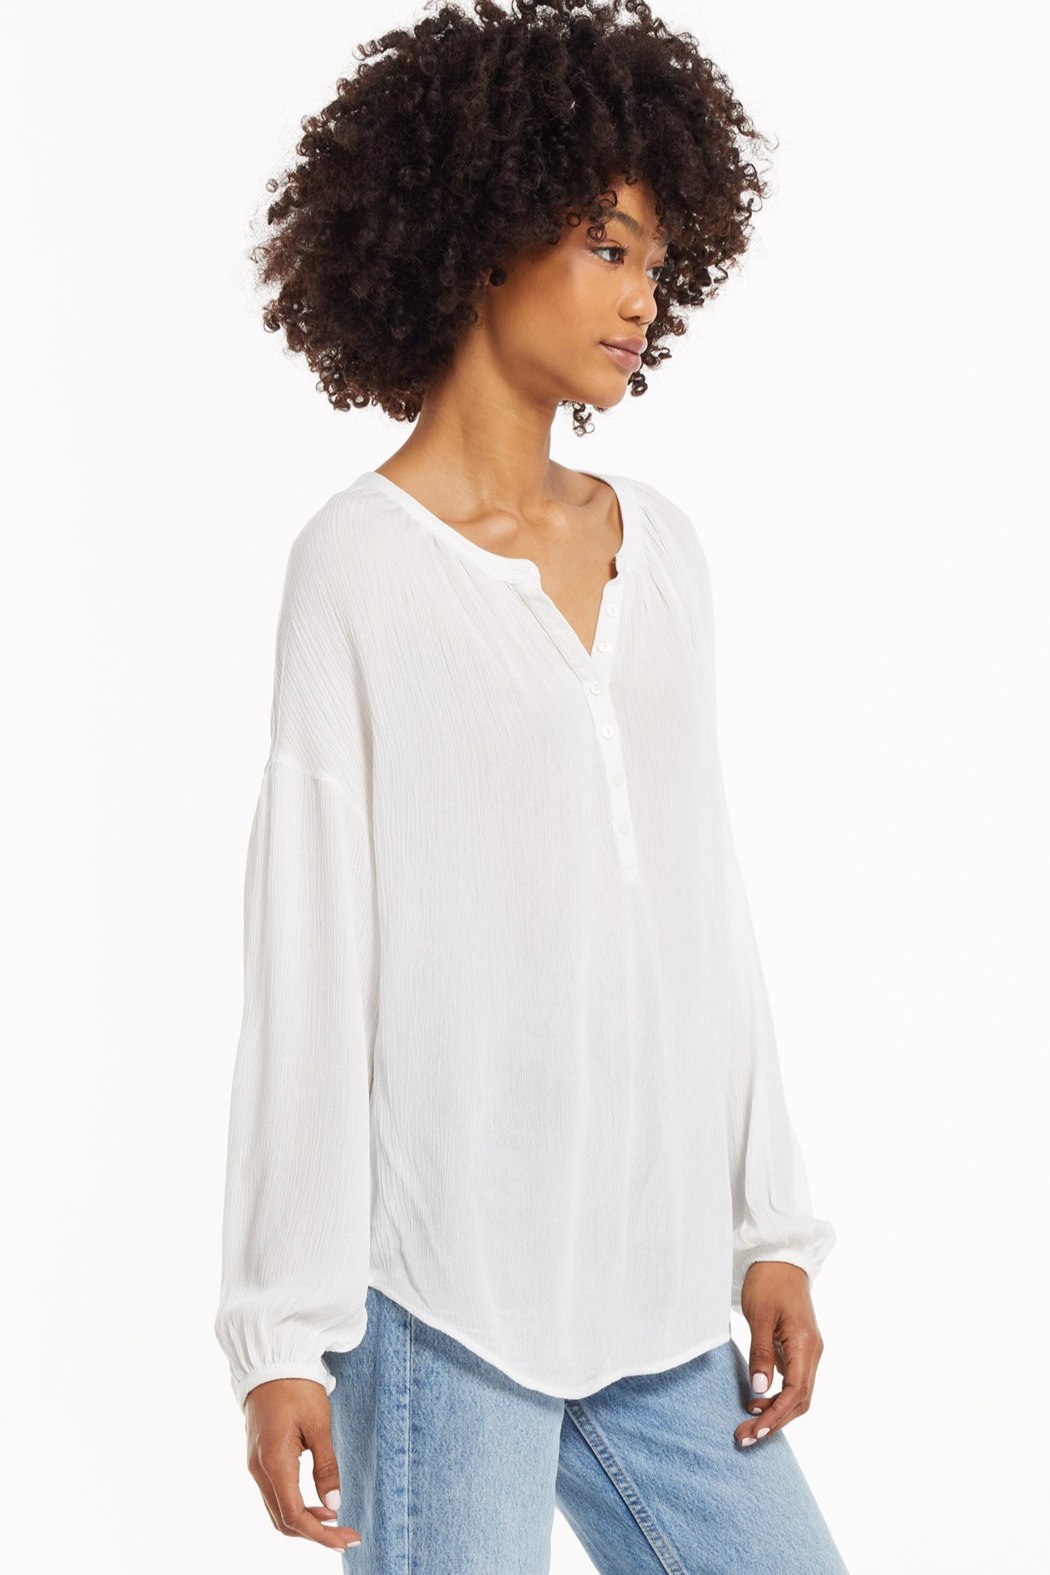 z supply Bayfront Woven Top - Side Cropped Image